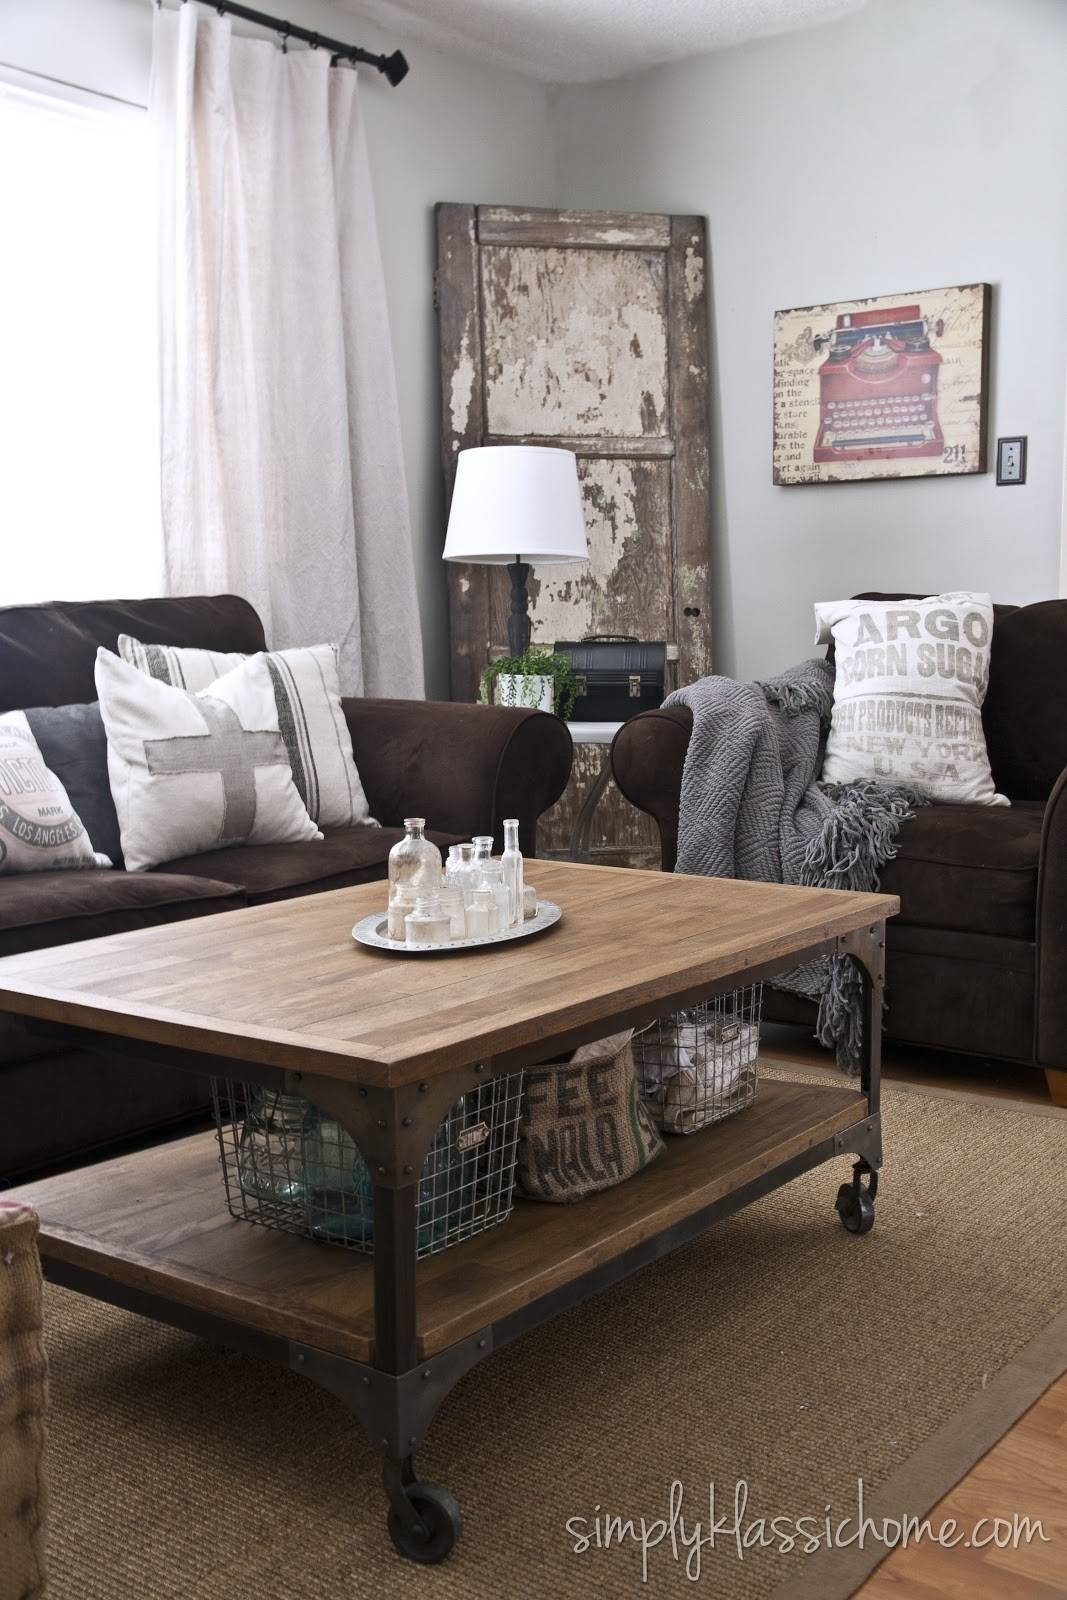 30 Best Accent Colors For My Brown Couch Images On Pinterest regarding Living Room With Brown Sofas (Image 3 of 15)